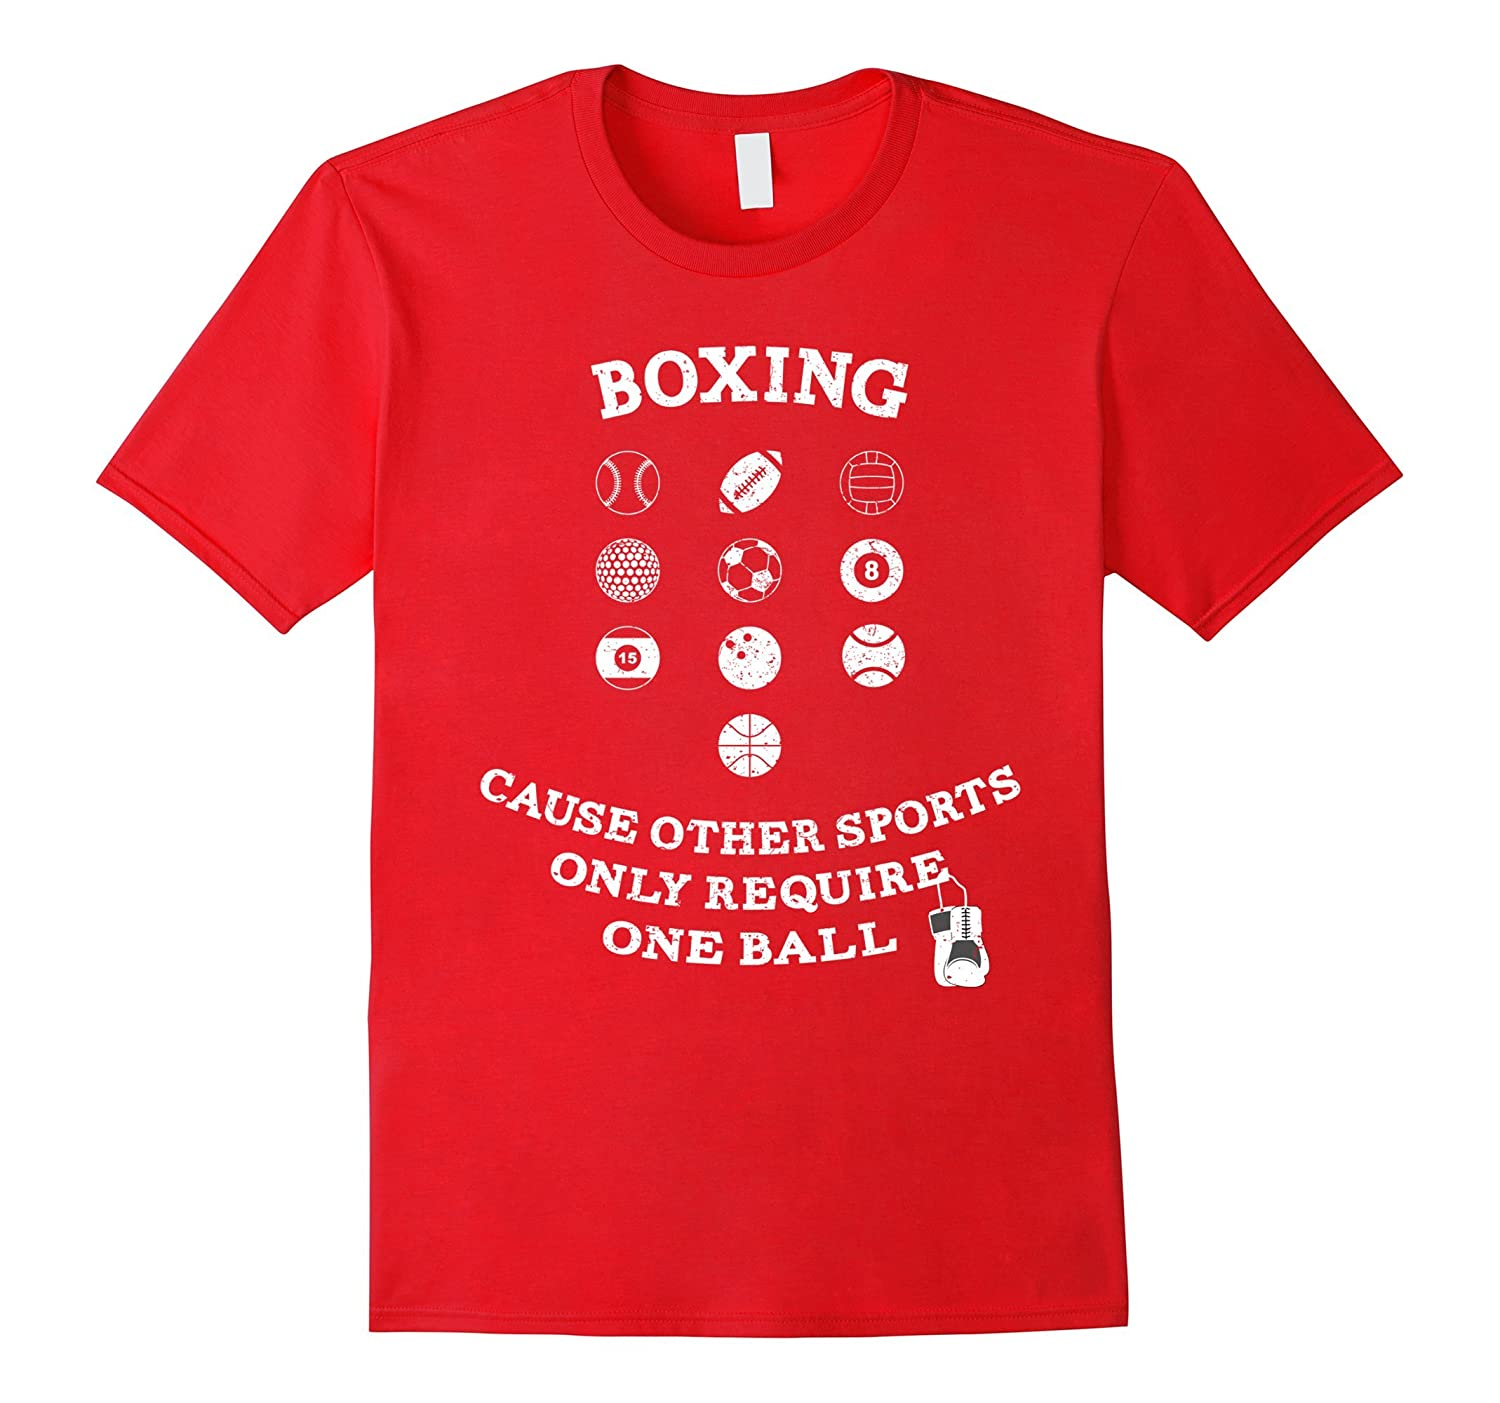 Boxing Cause Other Sports Only Require One Ball T-Shirt-Vaci